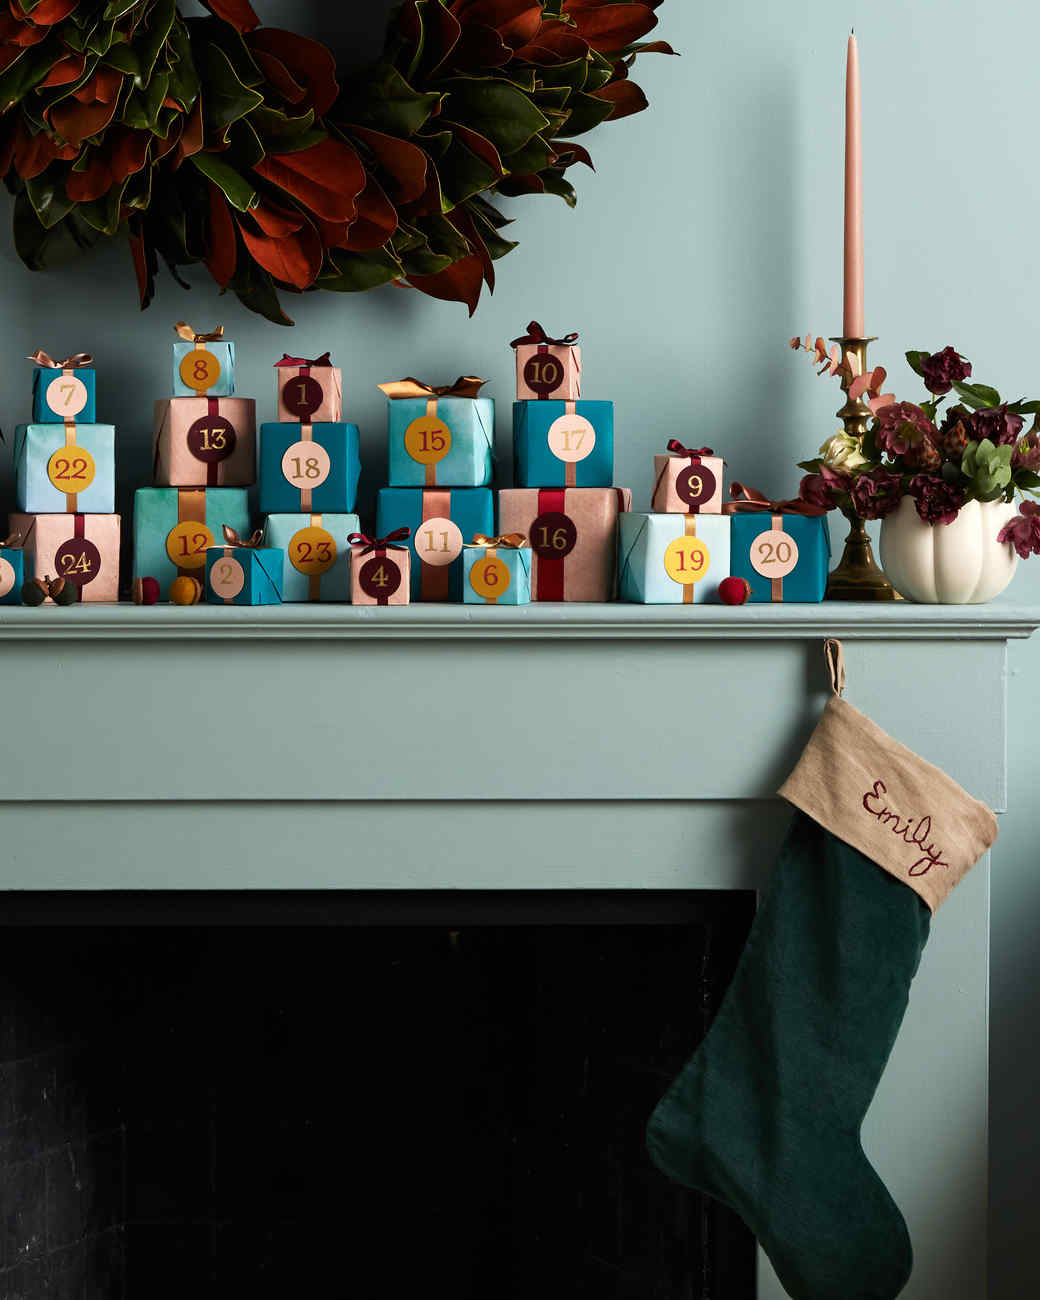 mantle blue wall with advent calendar presents stocking candles wreath